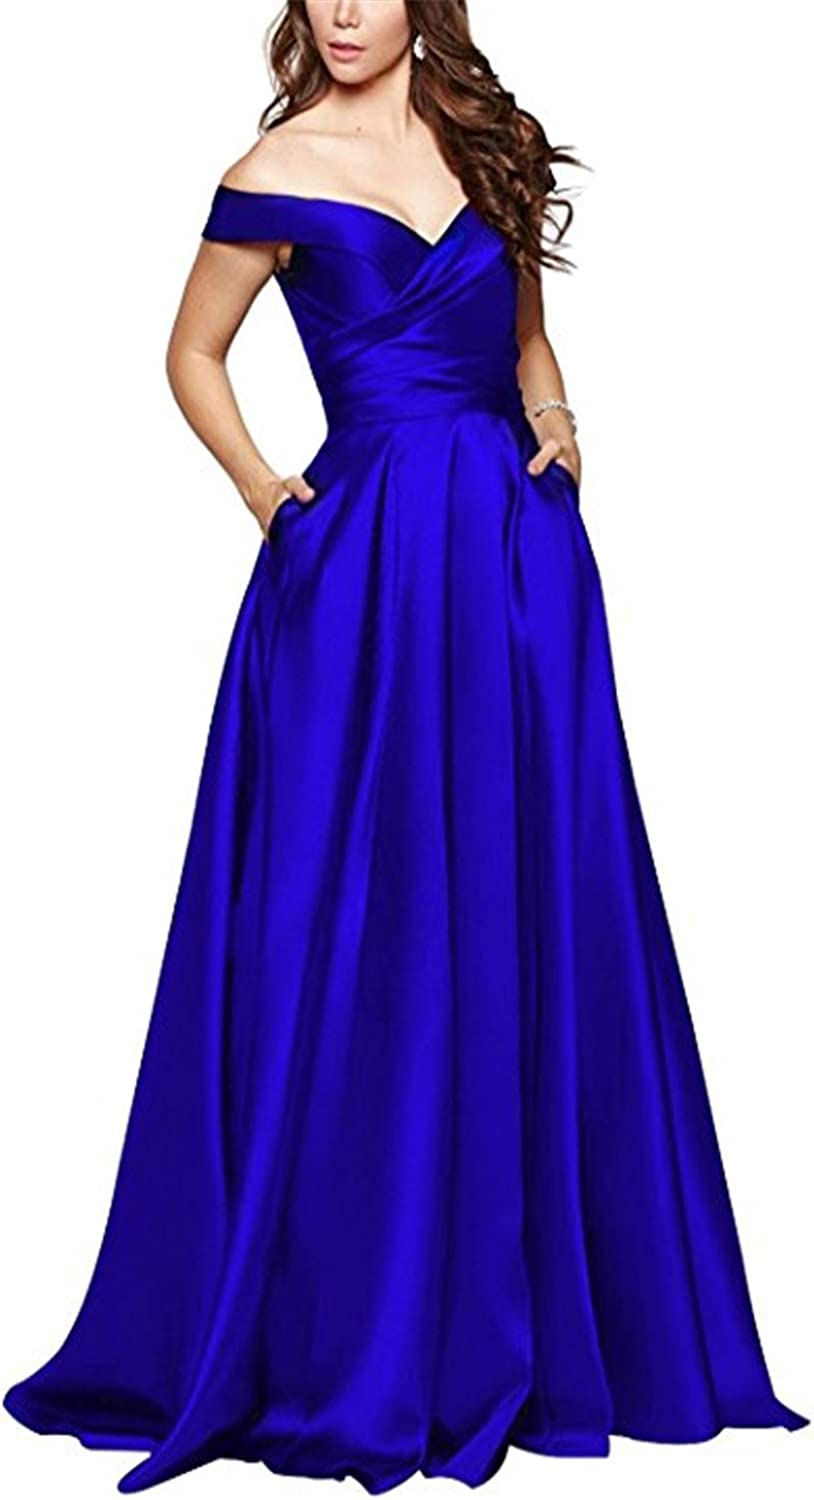 Homdor Strapless Off Shoulder Prom Dress with Pockets ALine Long Evening Gowns